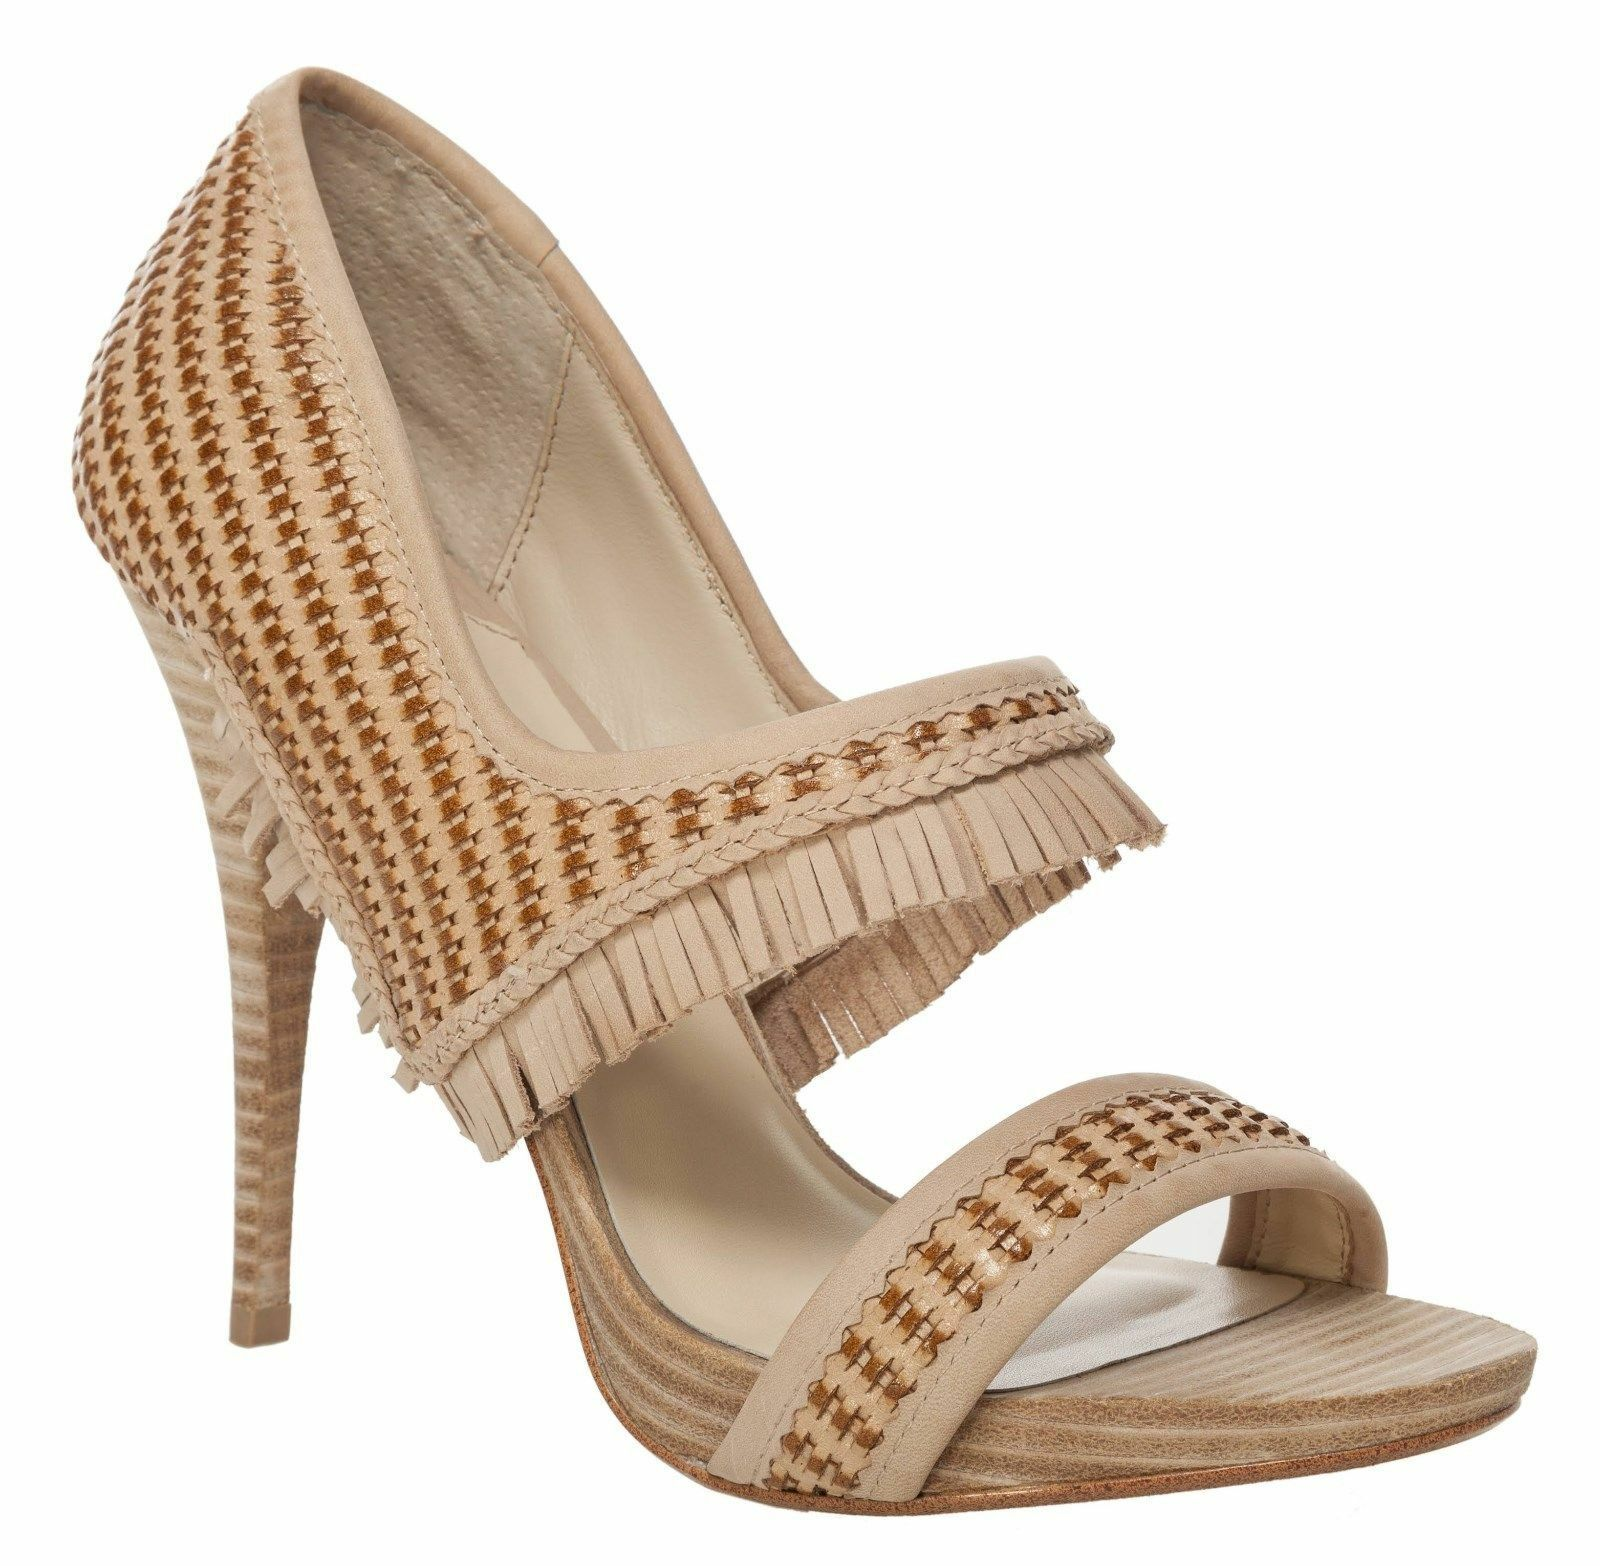 328 MAXSTUDIO Evan Heel Fringed Woven Leather Sandal Beige 8.5M NEW